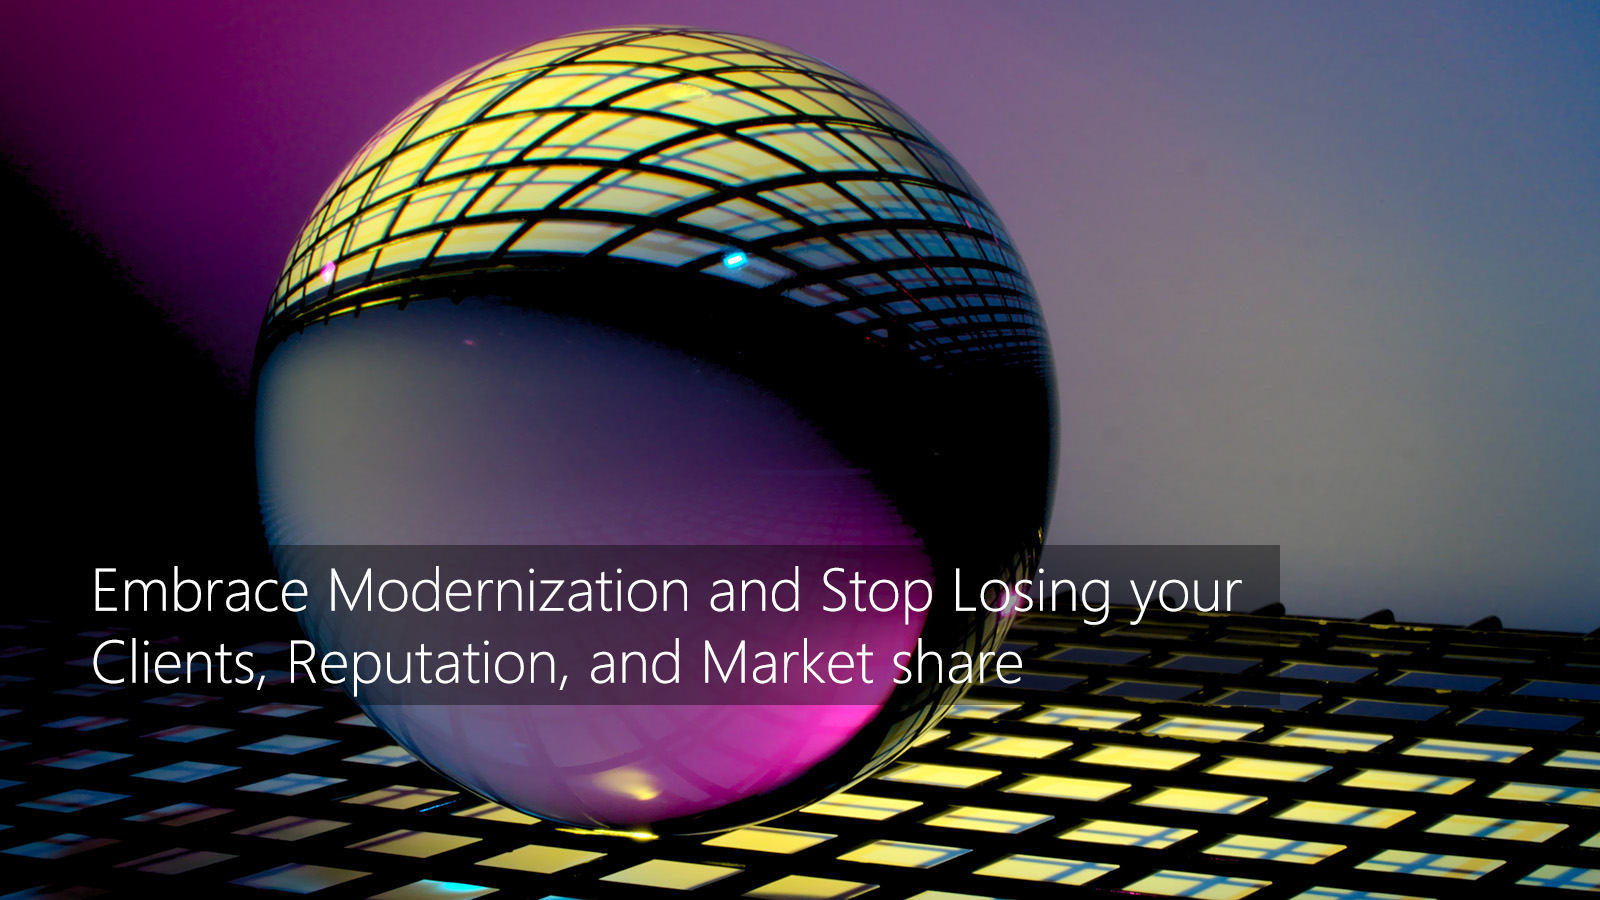 Embrace Modernization and Stop Losing your Clients, Reputation, and Market share